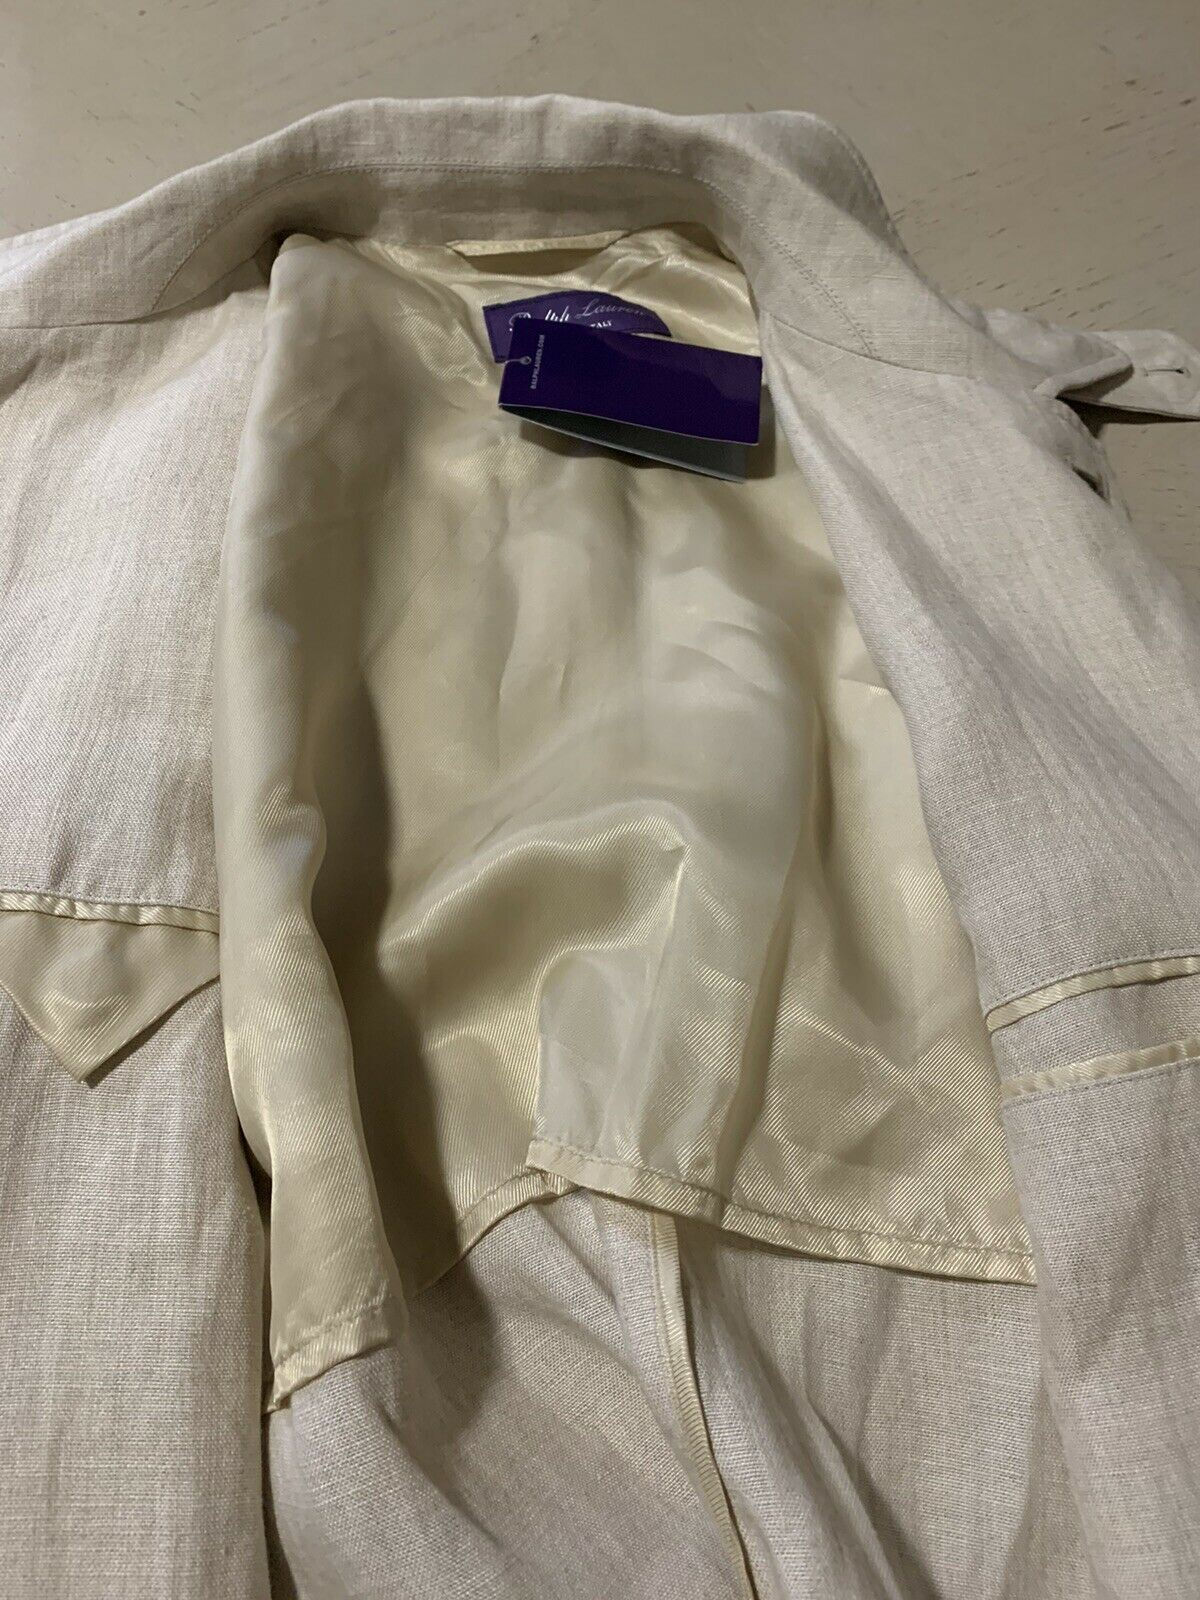 New$1995 Ralph Lauren Purple Label Men 100% Linen Trench Coat Cream 42L US Italy